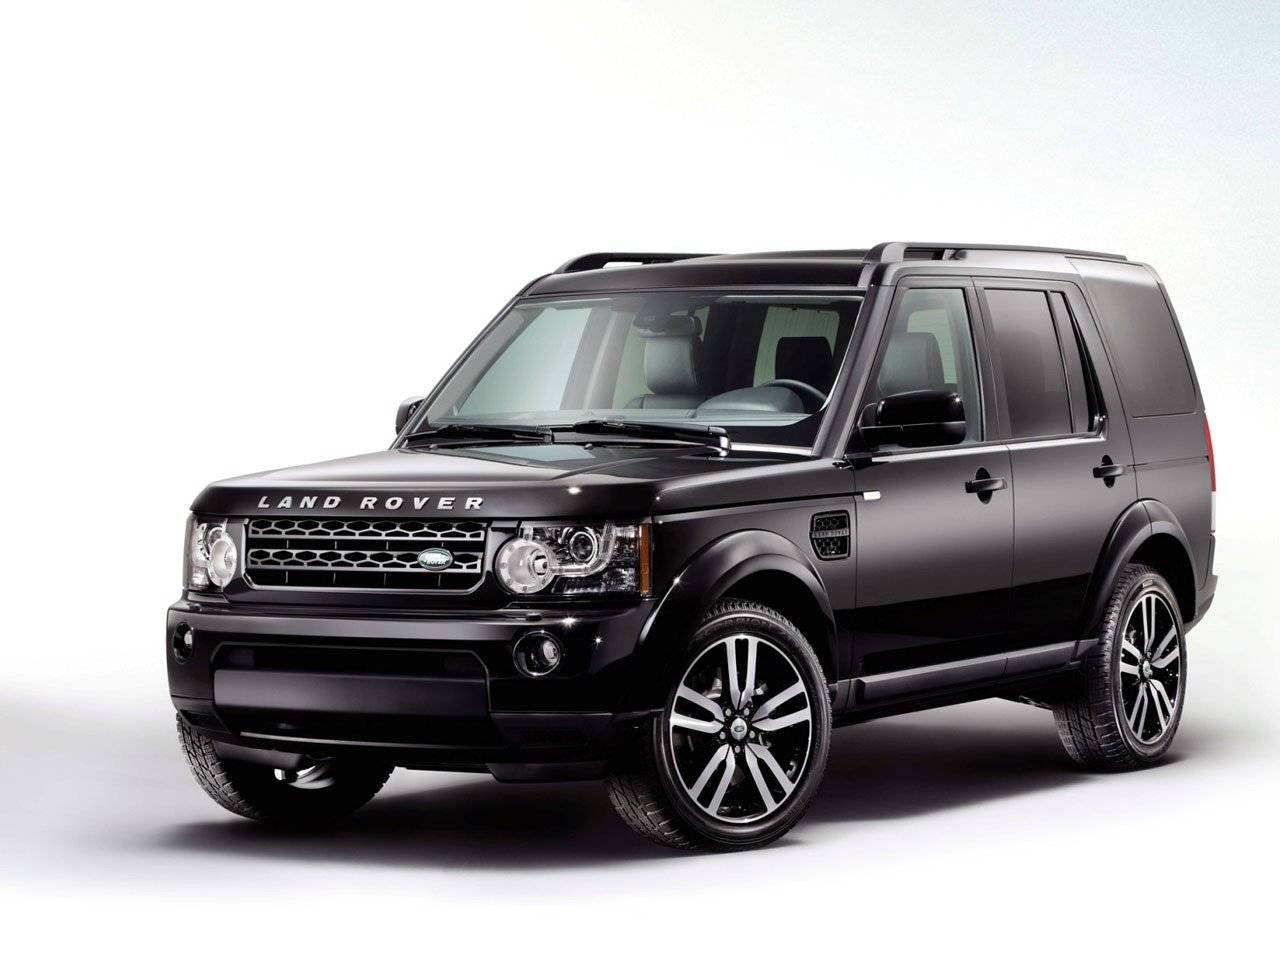 Land Rover Discovery 4 Black Amp White Autonieuws